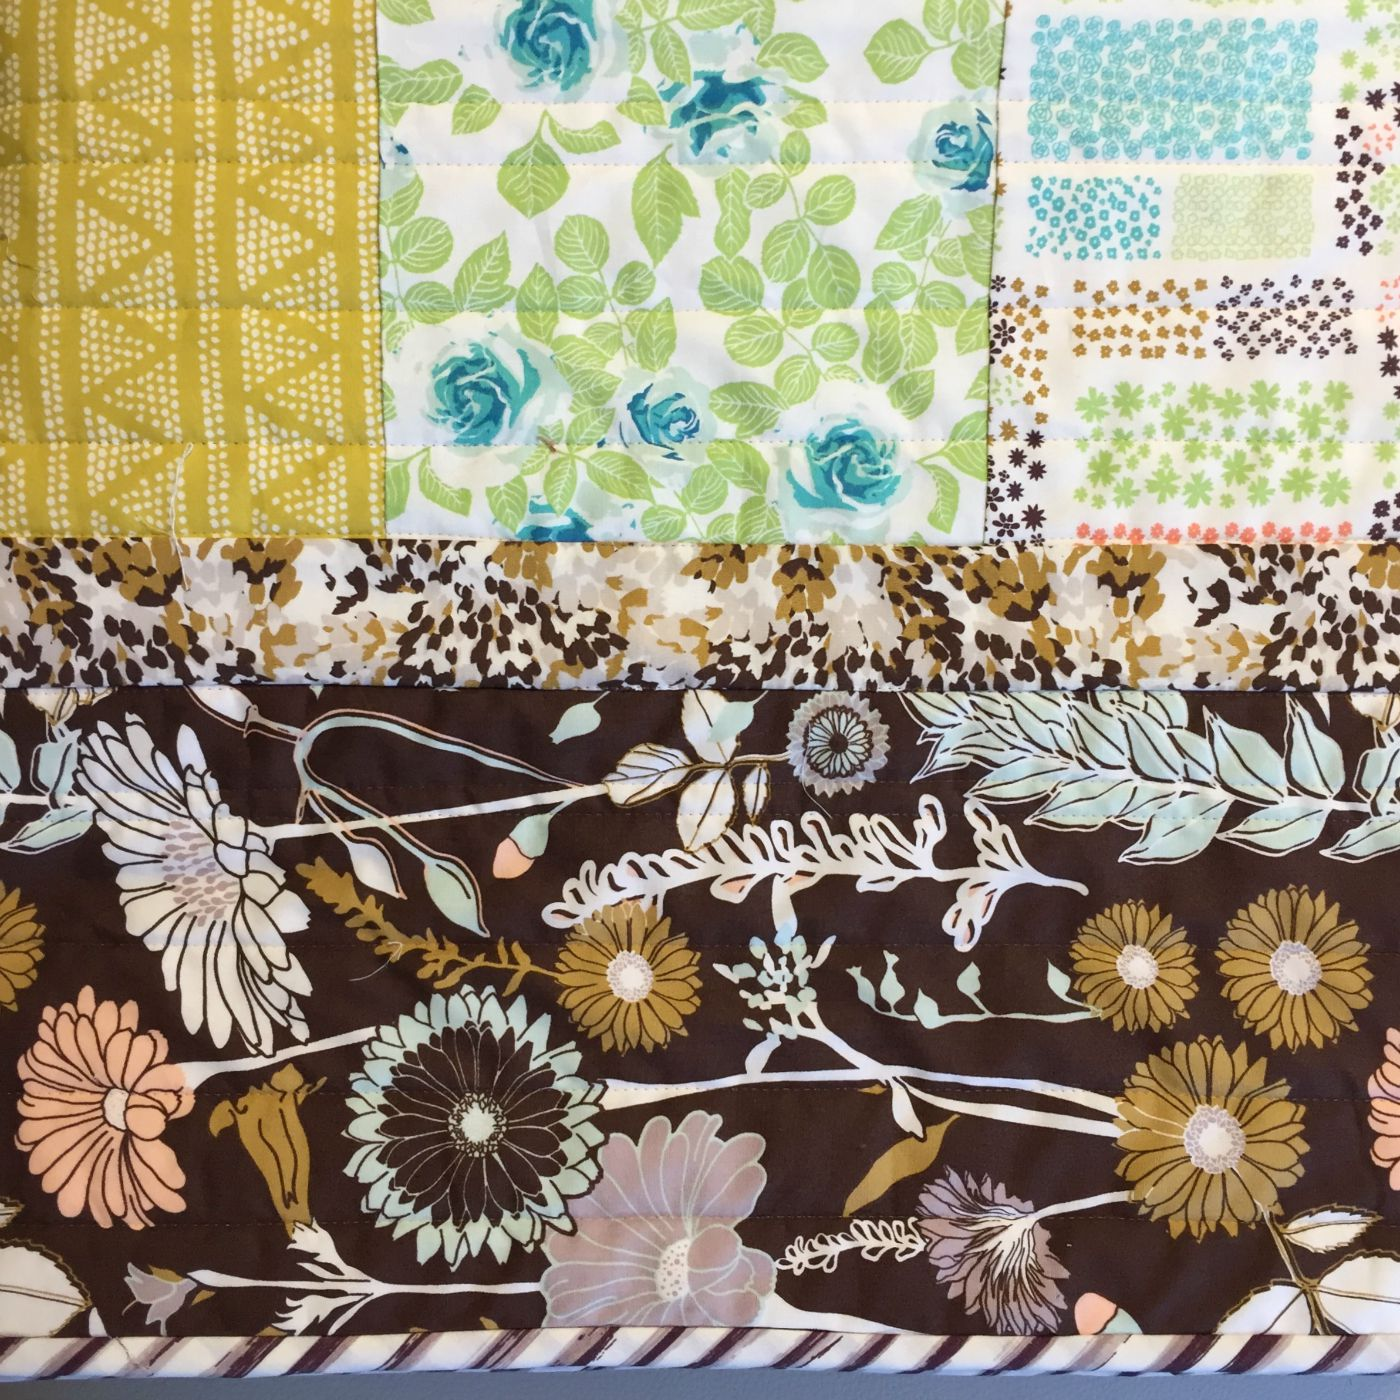 Cultivate fabrics by Bonnie Christine play together beautifully in this fast, easy quilt.